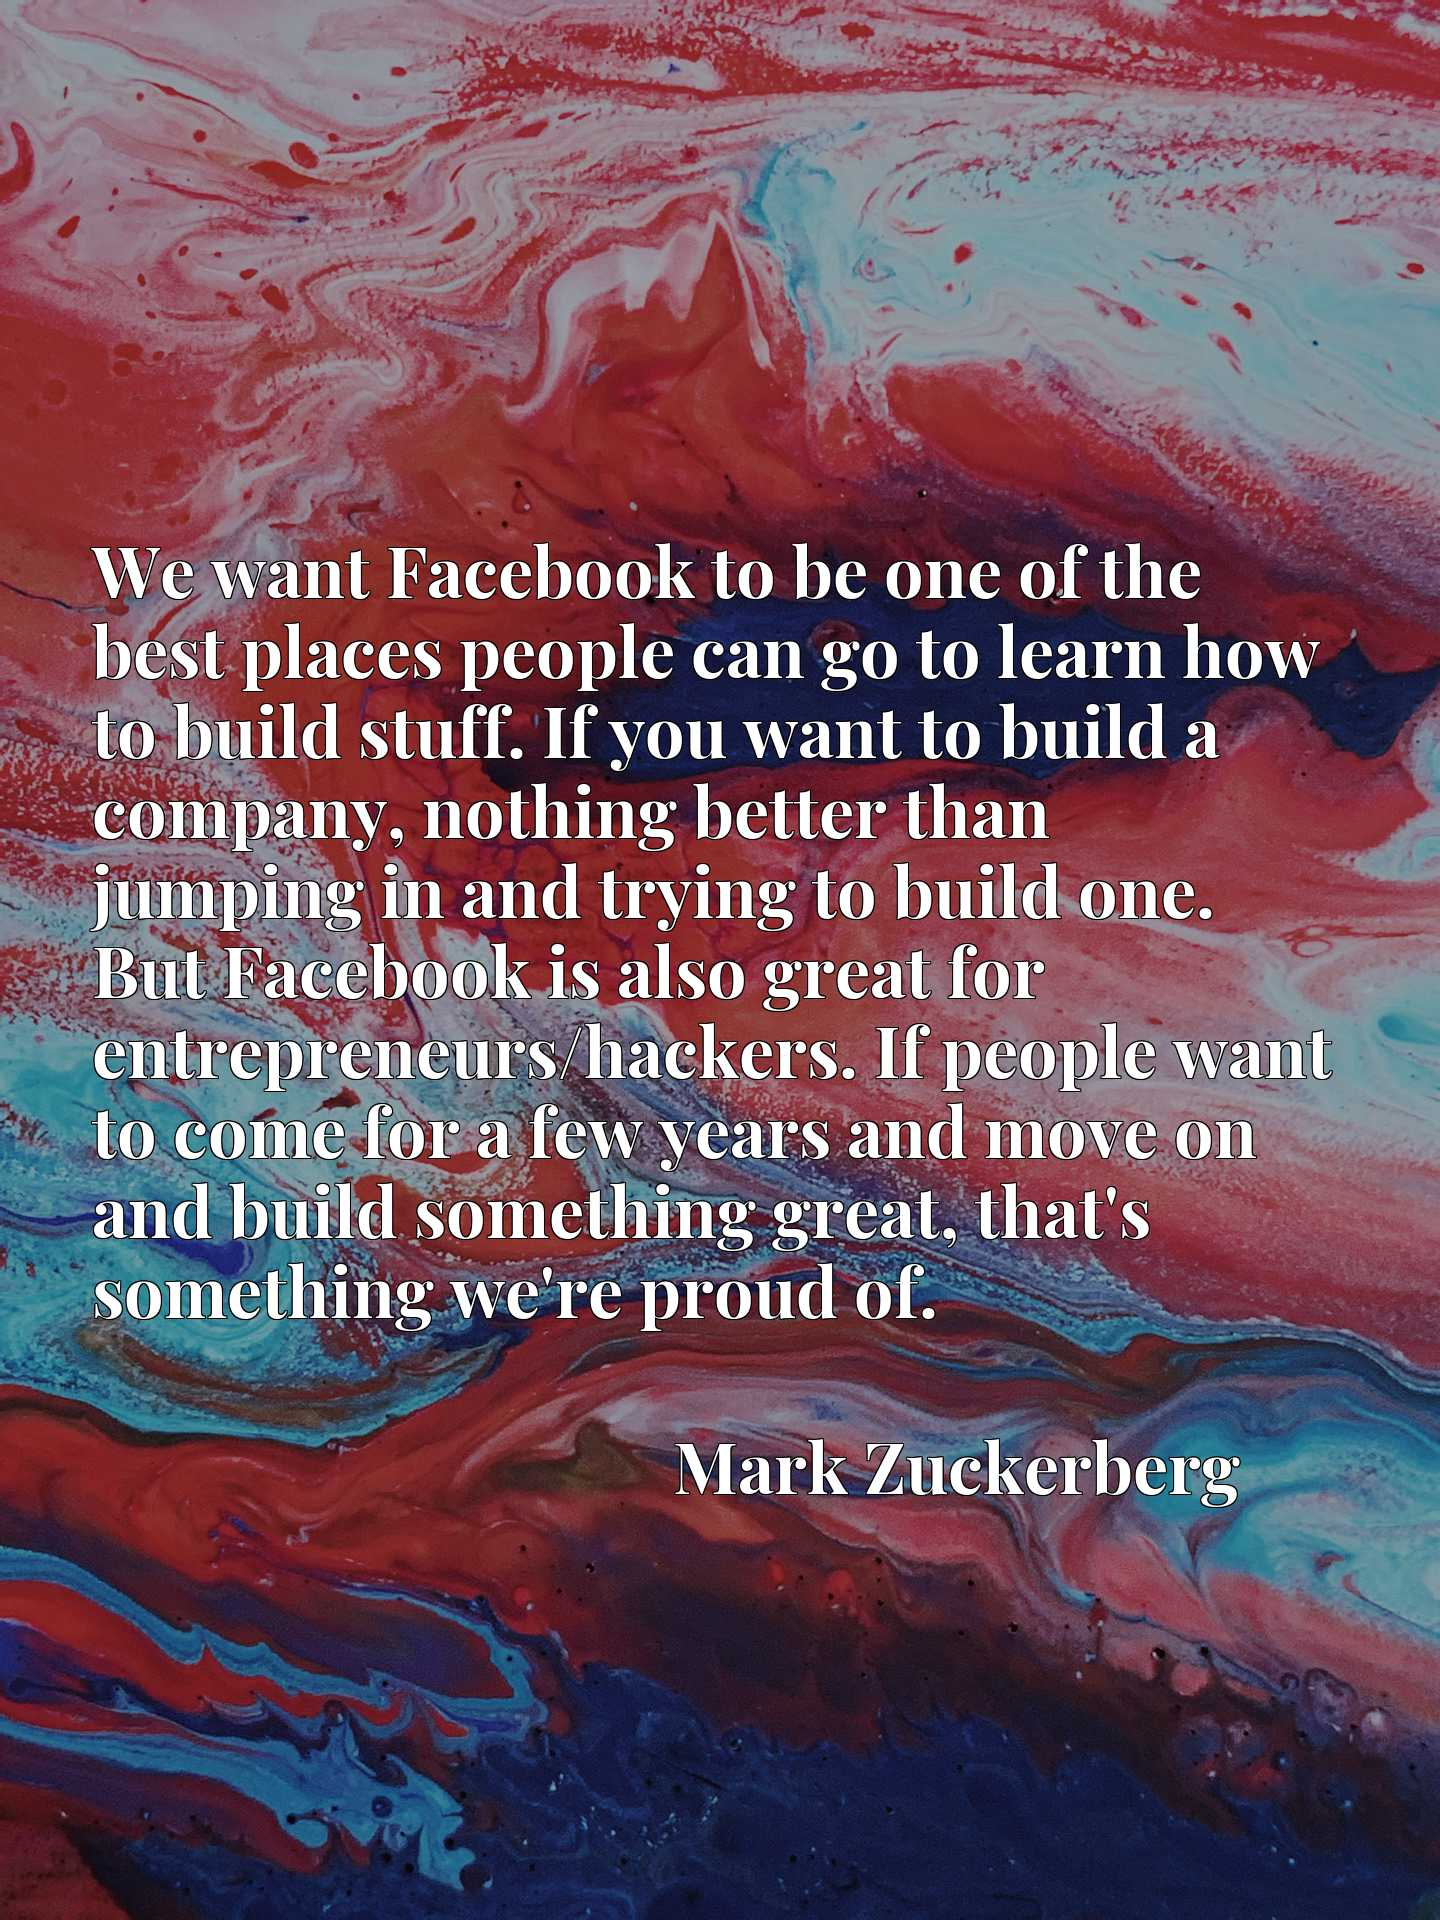 We want Facebook to be one of the best places people can go to learn how to build stuff. If you want to build a company, nothing better than jumping in and trying to build one. But Facebook is also great for entrepreneurs/hackers. If people want to come for a few years and move on and build something great, that's something we're proud of.